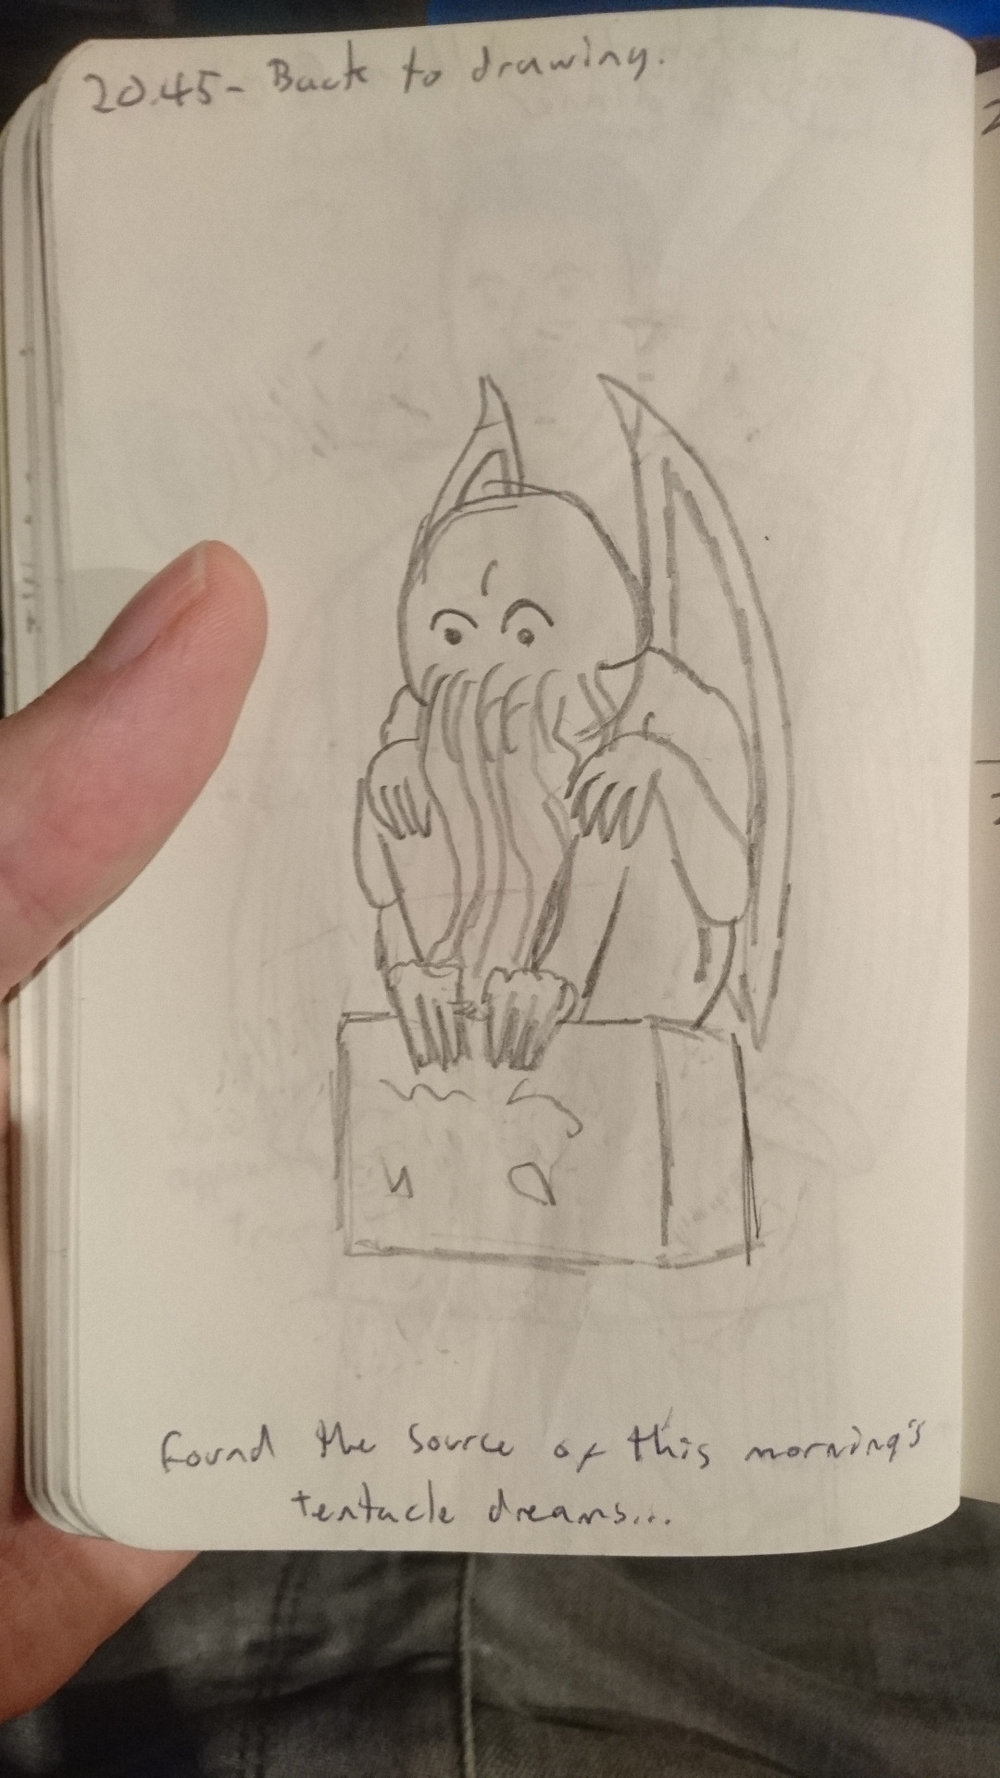 20:45:  Back to drawing. Found the source of this morning's tentacle dreams...